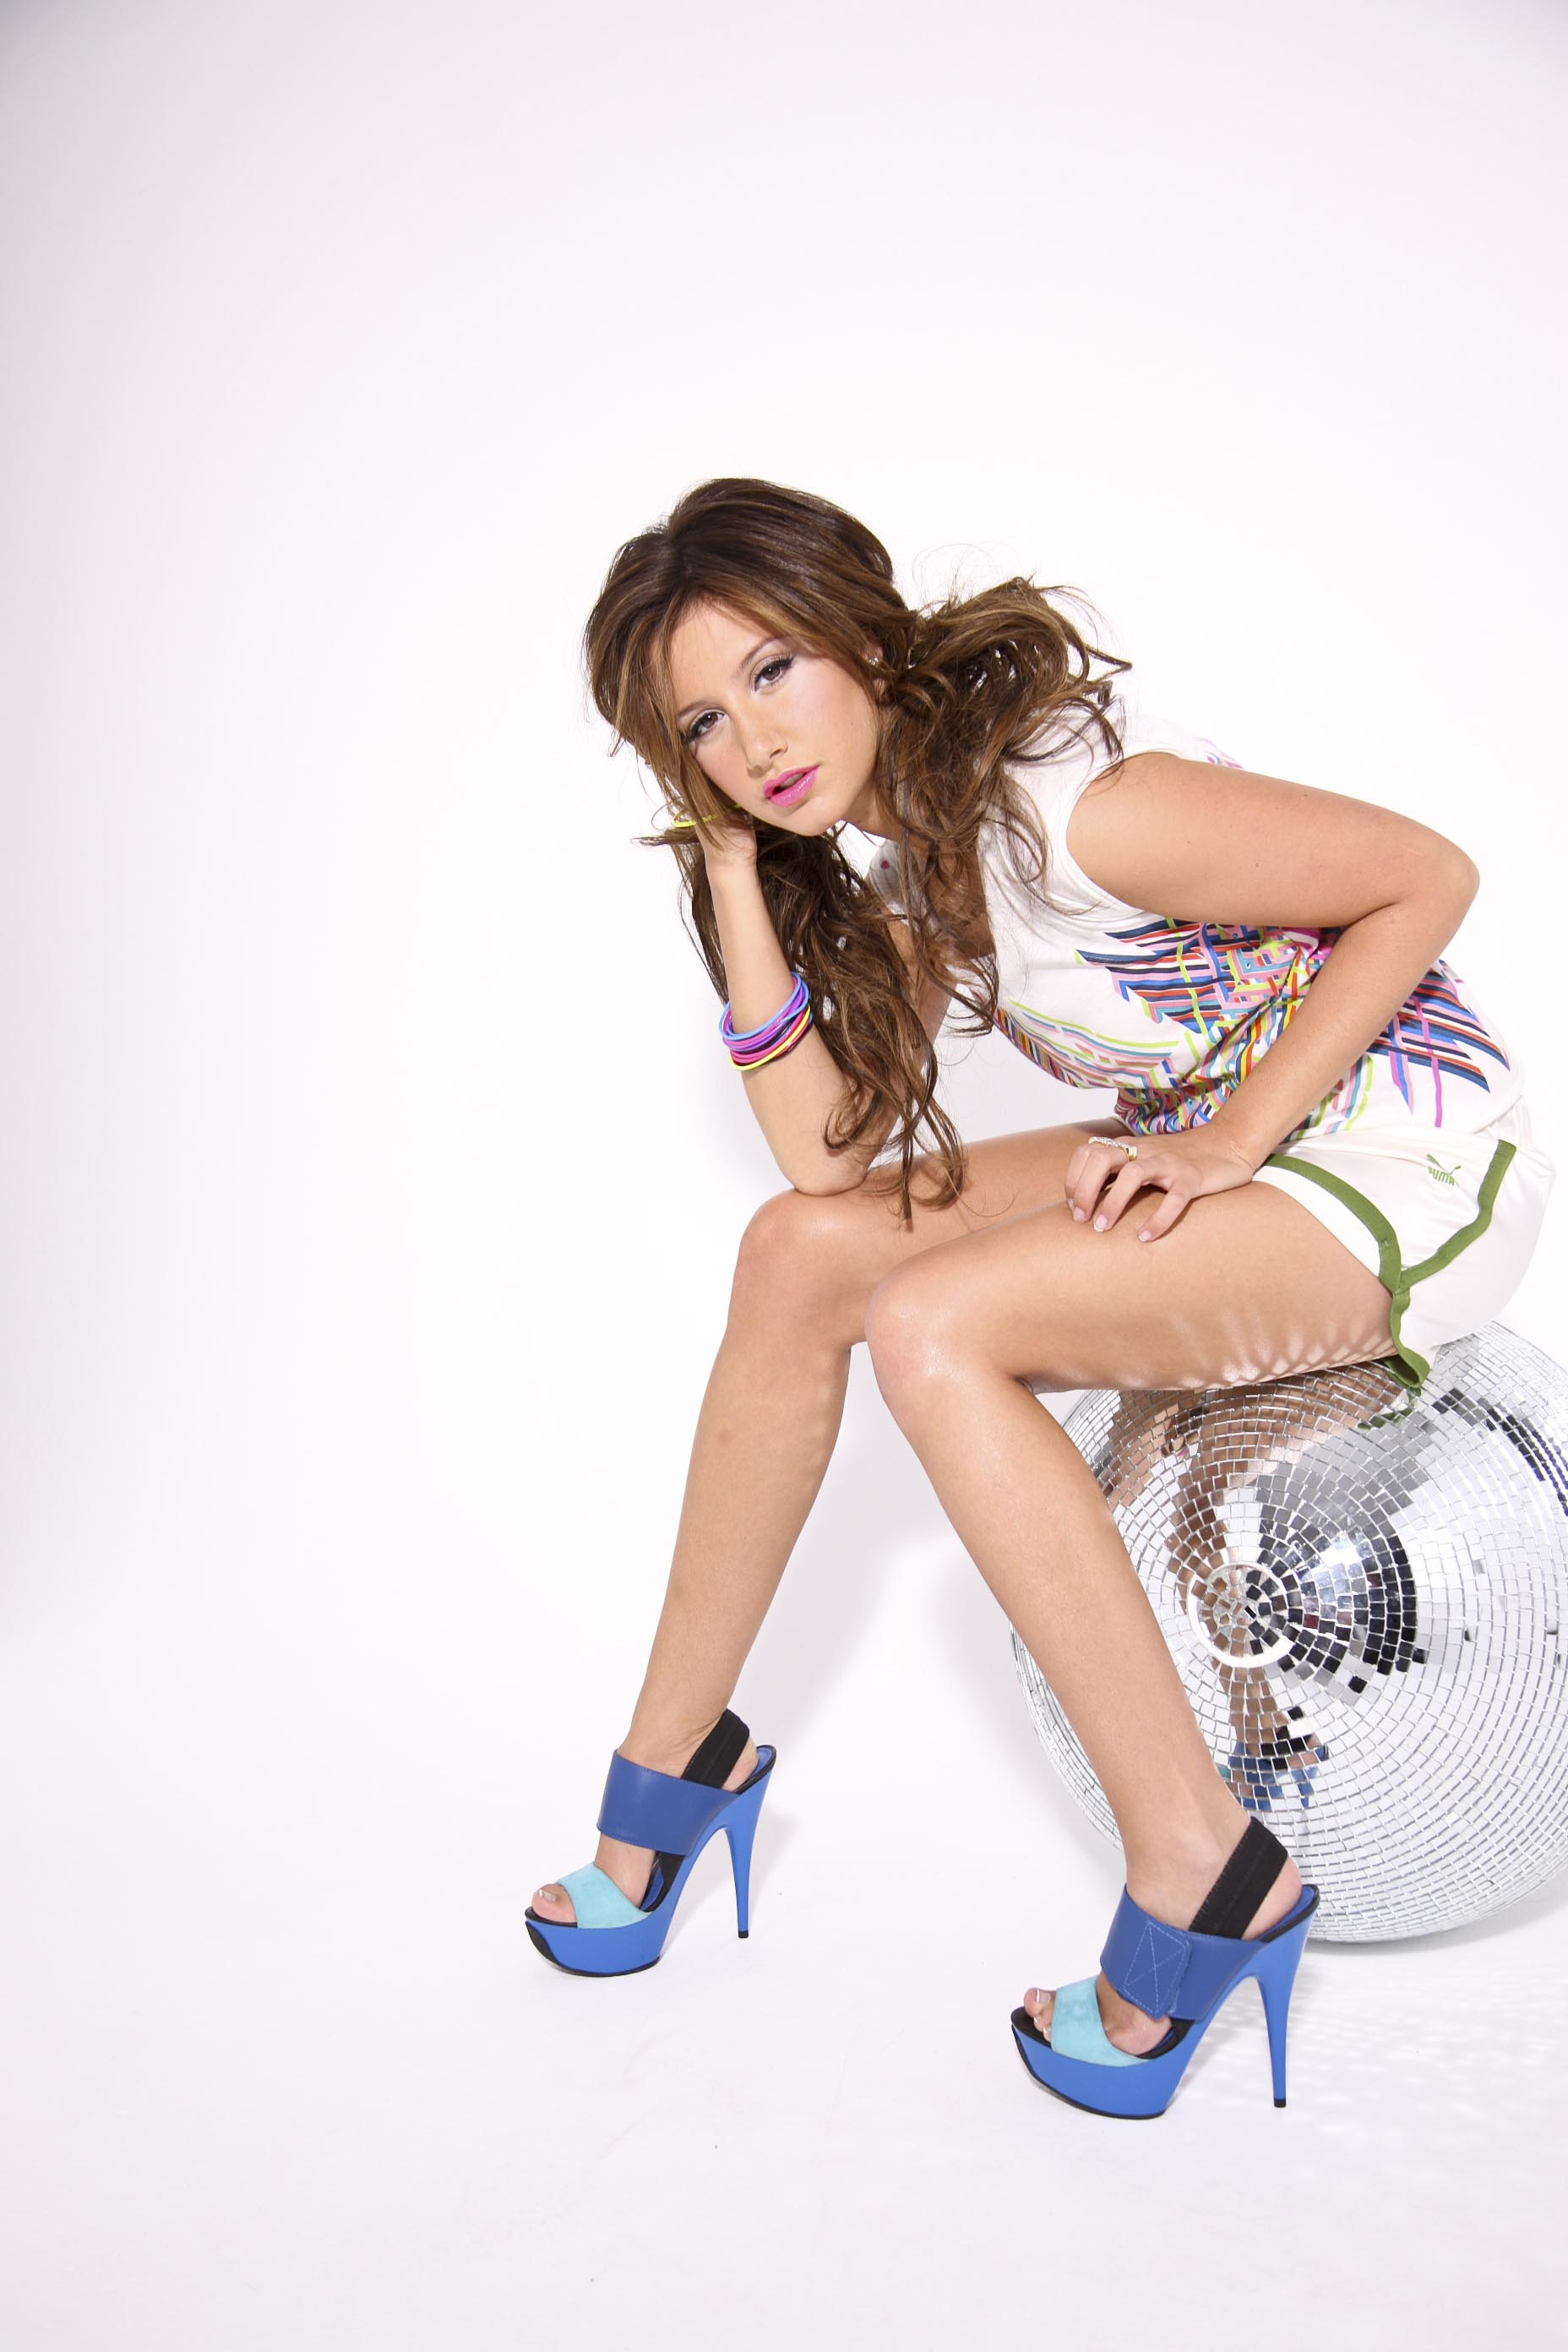 Ashley_Tisdale_-_2009_Derrick_Santini_PS_for_Sugar_Magazine_x1